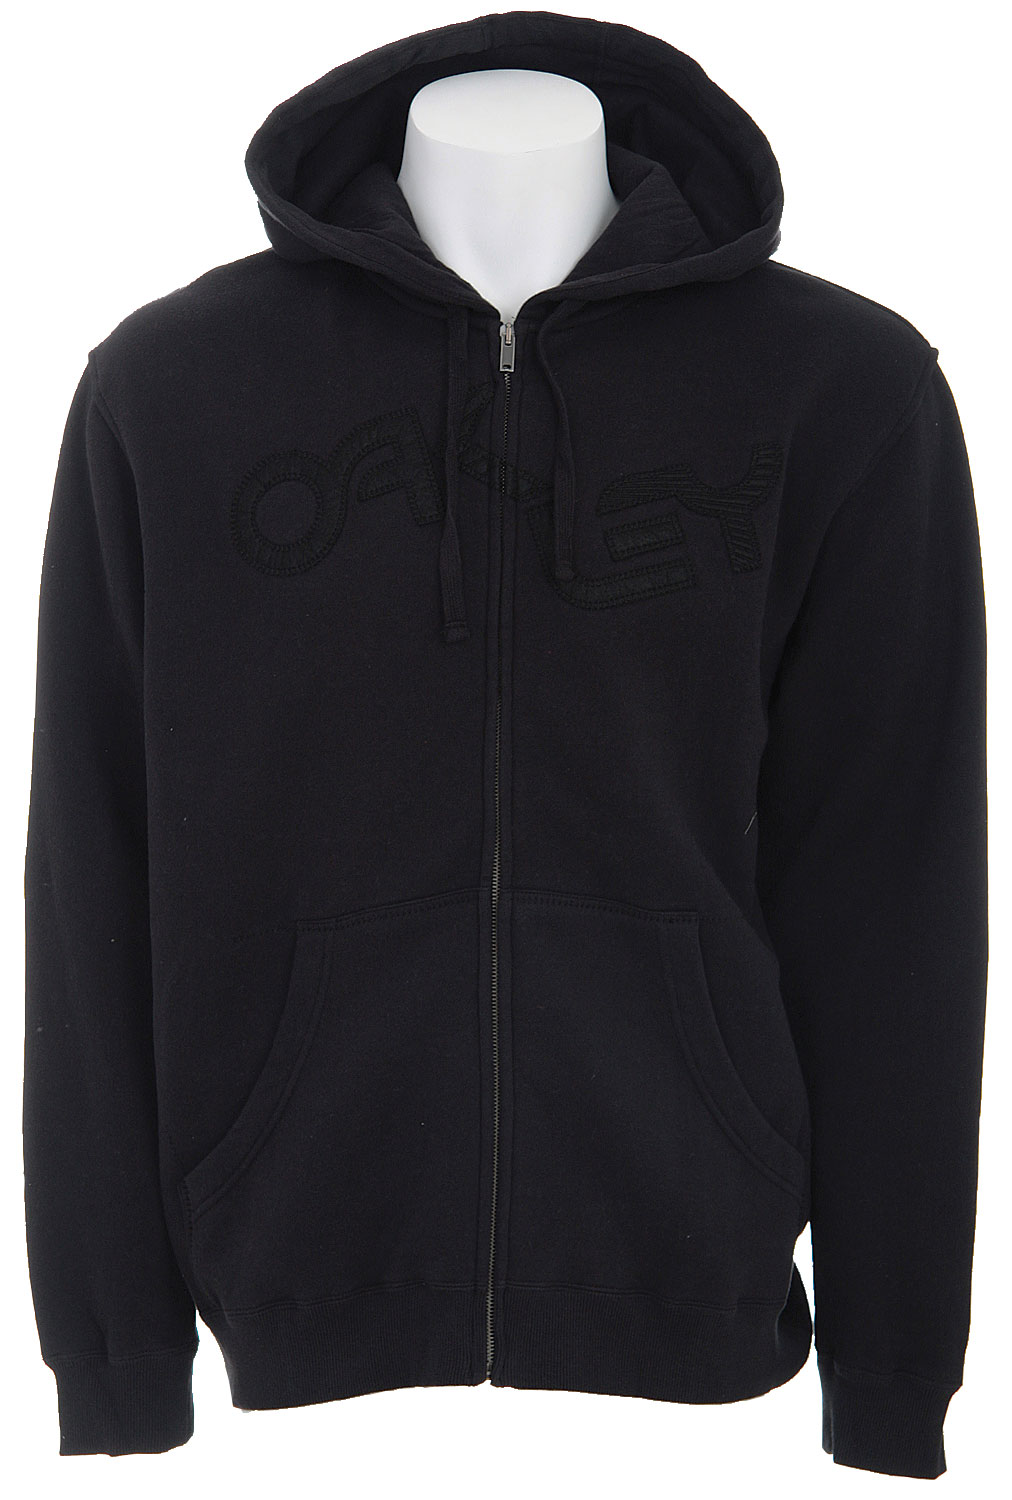 The Oakley Vintage Hoodie is a classic inspired sweater for anyone! It is a full zip hoodie made of cotton and polyester. This particular design does not only include the jersey lined hood for comfort but comes in a fade resistant black color!Key Features of The Oakley Vintage Hoodie: Full Zip Hoody with Marsupial Hand Pockets Jersey Lined Hood Felt Applique Embroidery 80% Cotton / 20% Polyester Regular Fit - $25.16